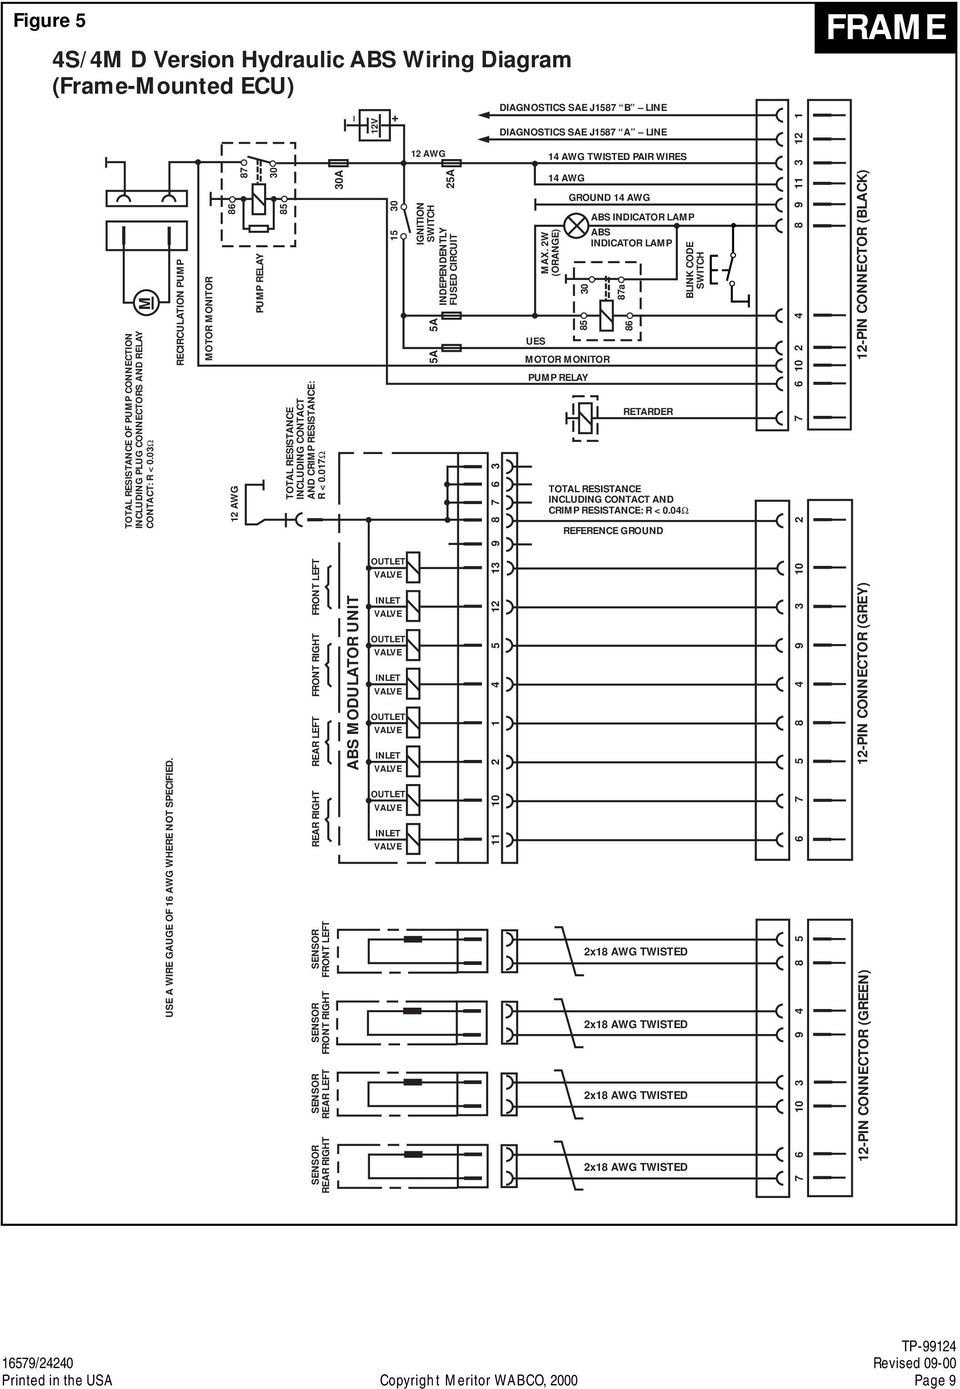 installation guide contents d version hydraulic abs pdf rh docplayer net